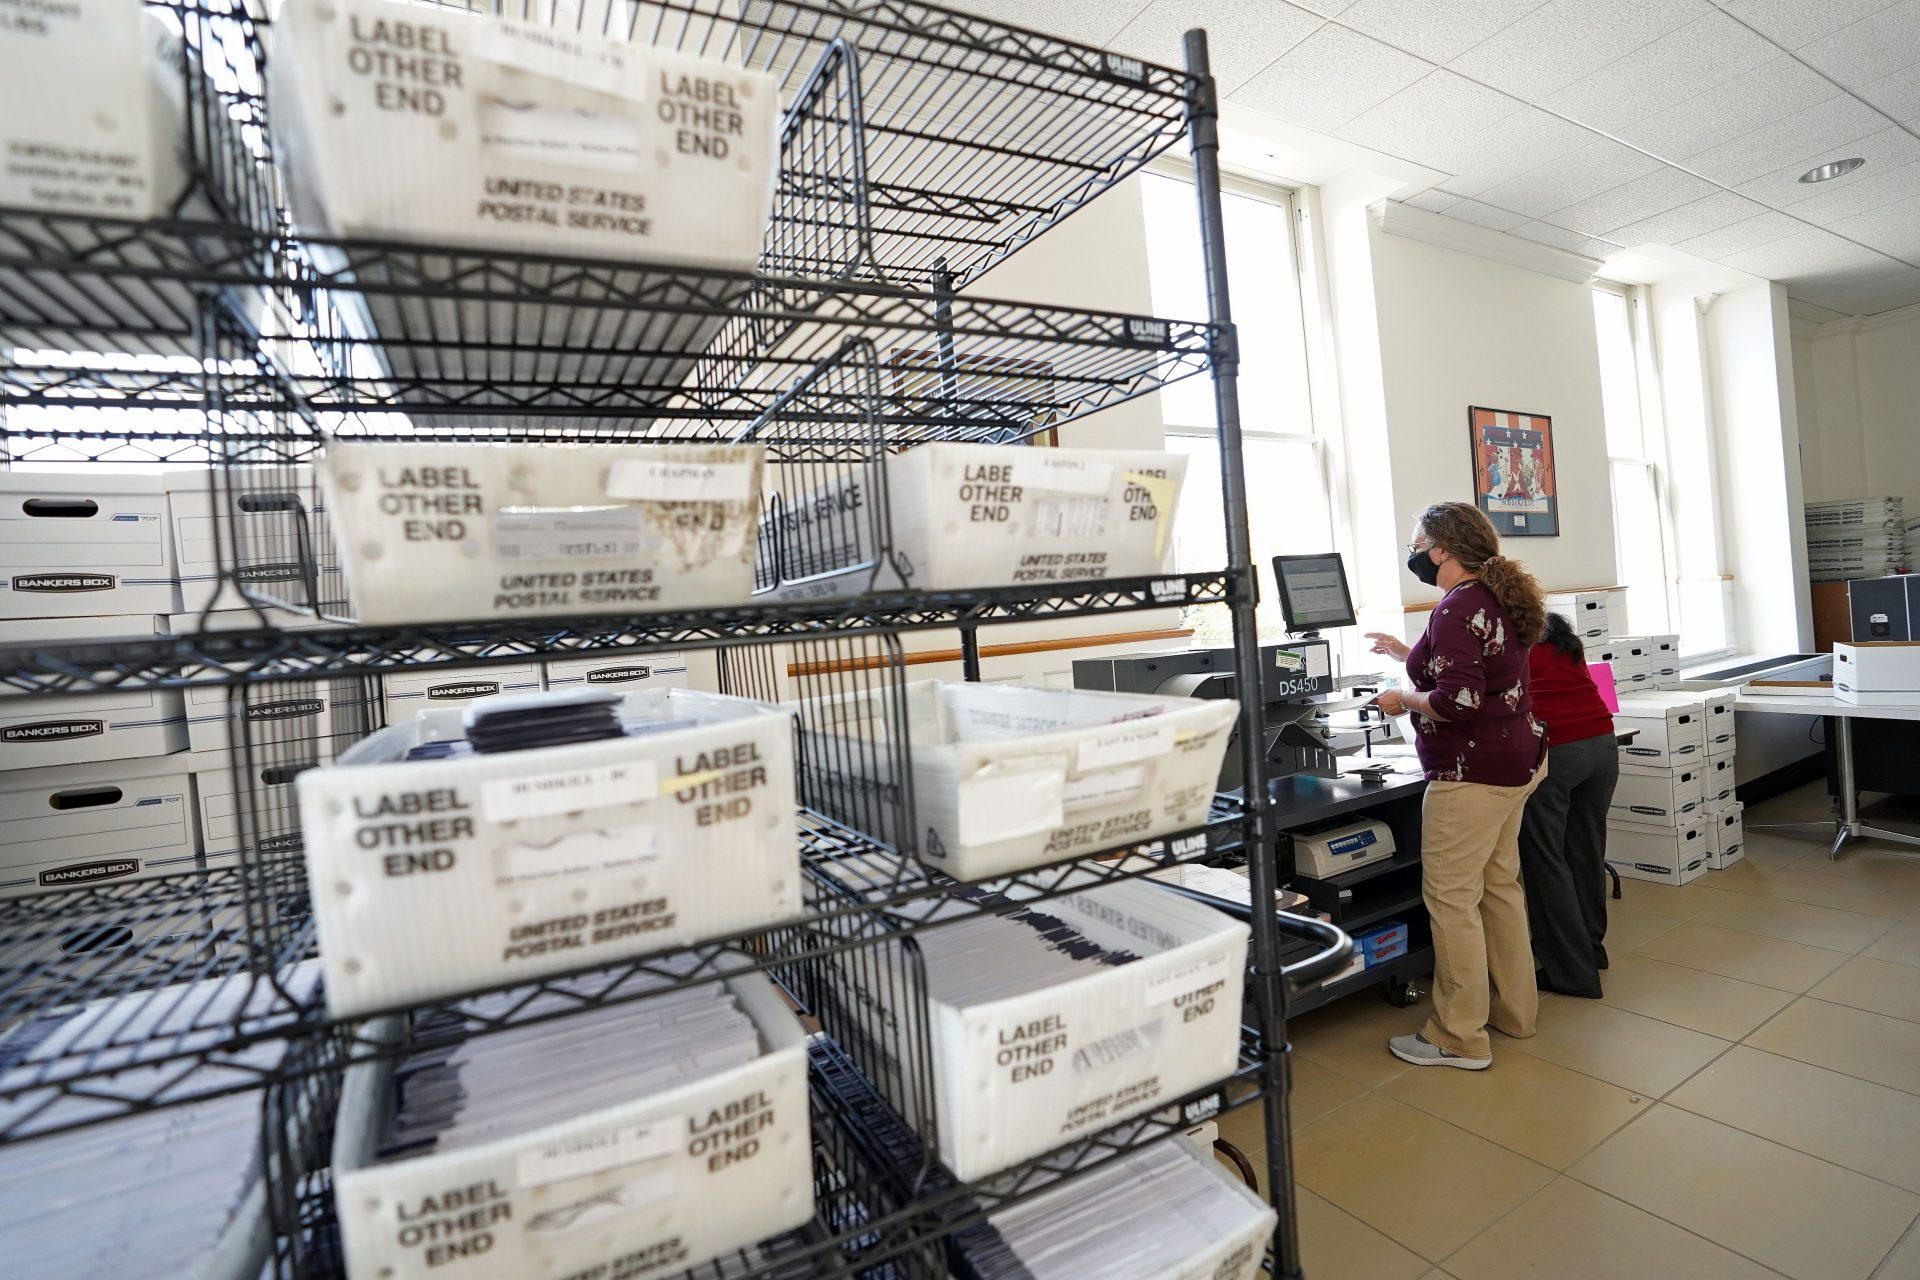 Mail ballots are sorted and counted by workers on Election Day 2020 at Northampton County Courthouse.